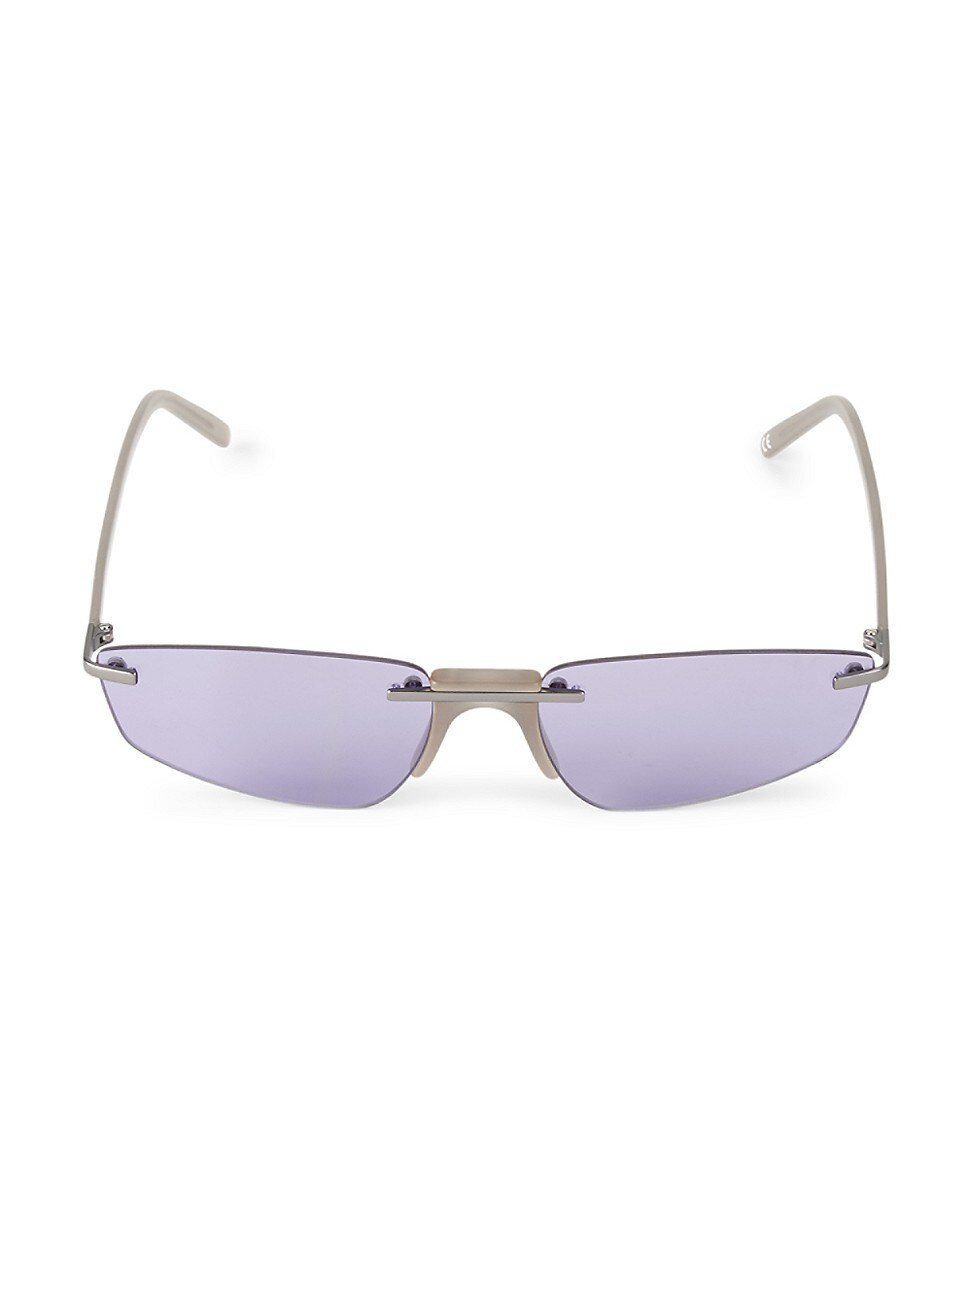 Andy Wolf WOMEN'S OPHELIA 58MM OVAL SUNGLASSES